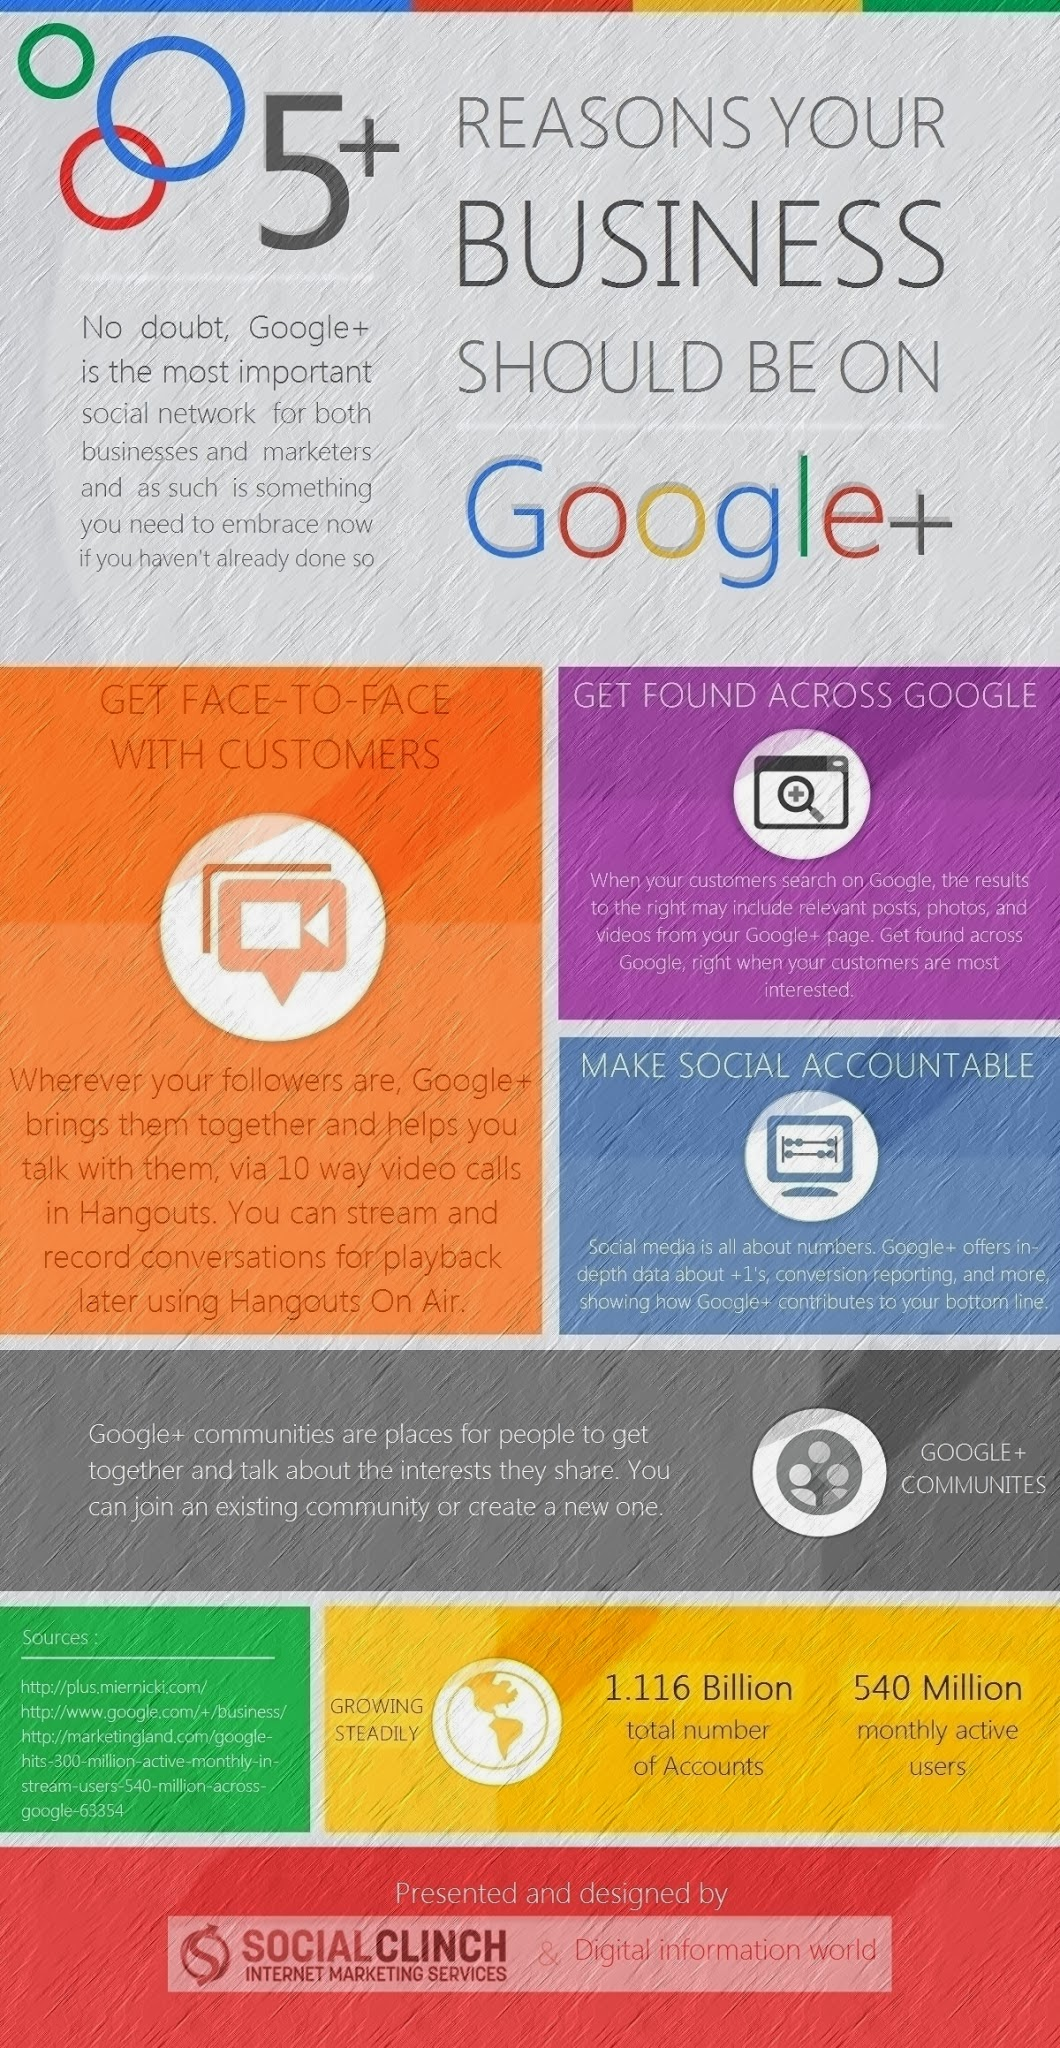 5 Reasons Your Business Should be on GooglePlus